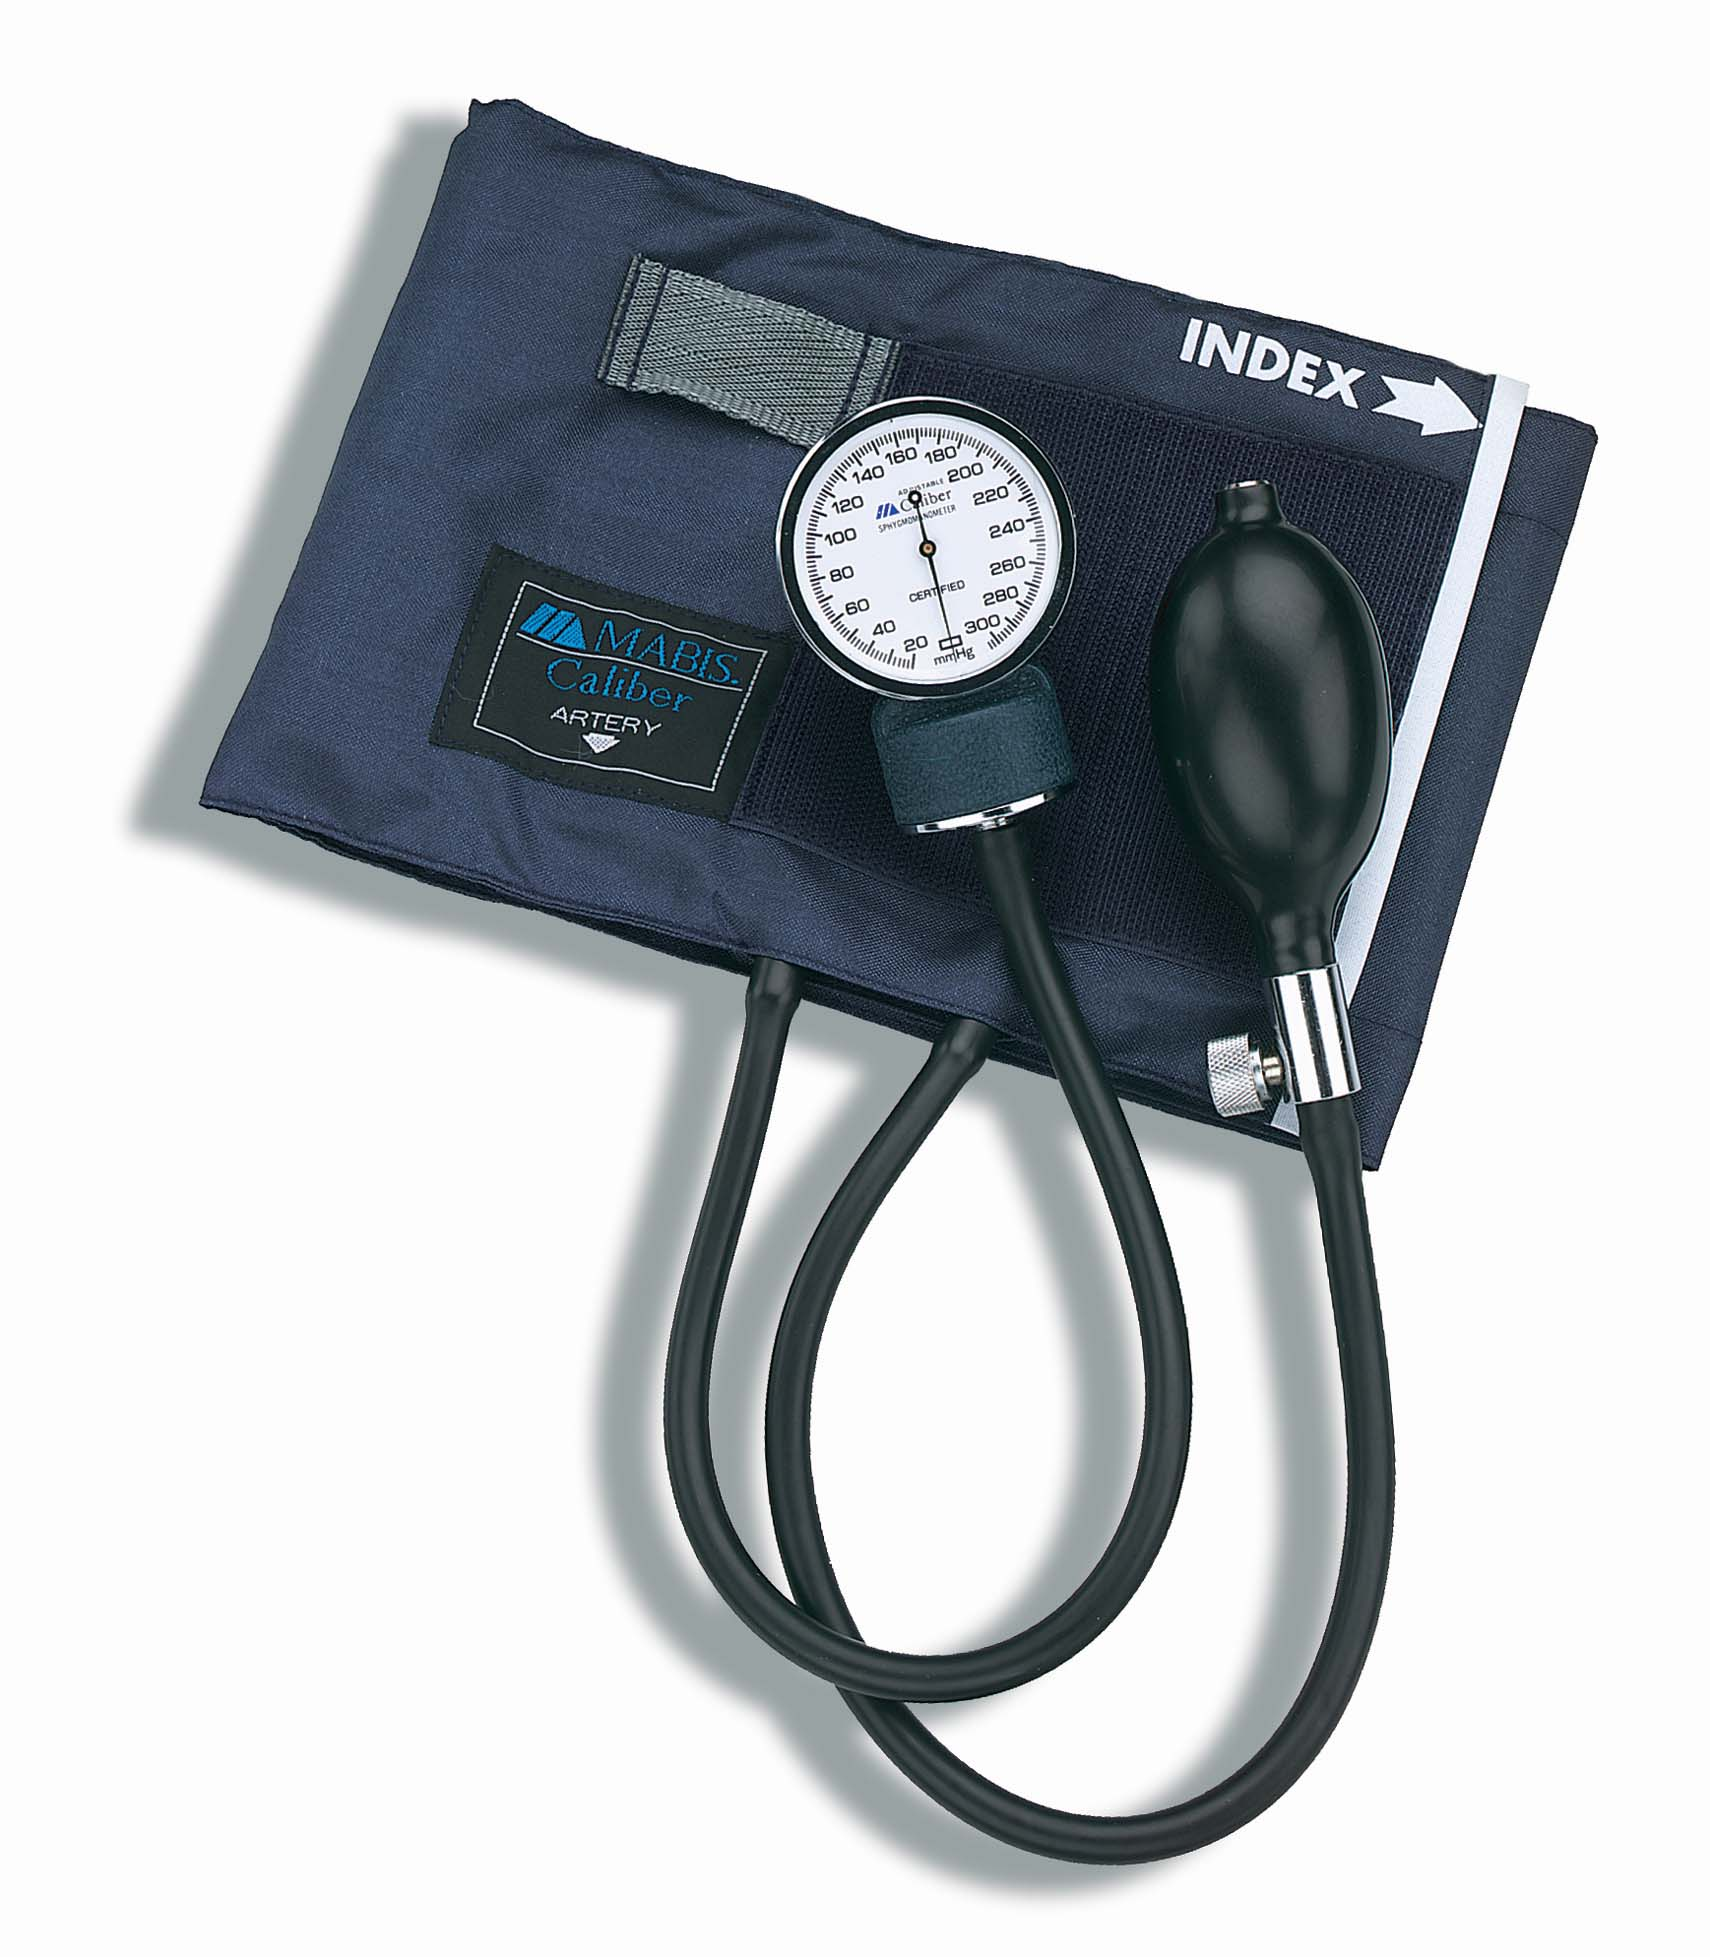 caliber-adjustable-aneroid-sphygmomanometer-blue-nylon-cuff-child-01-133-015-lr.jpg